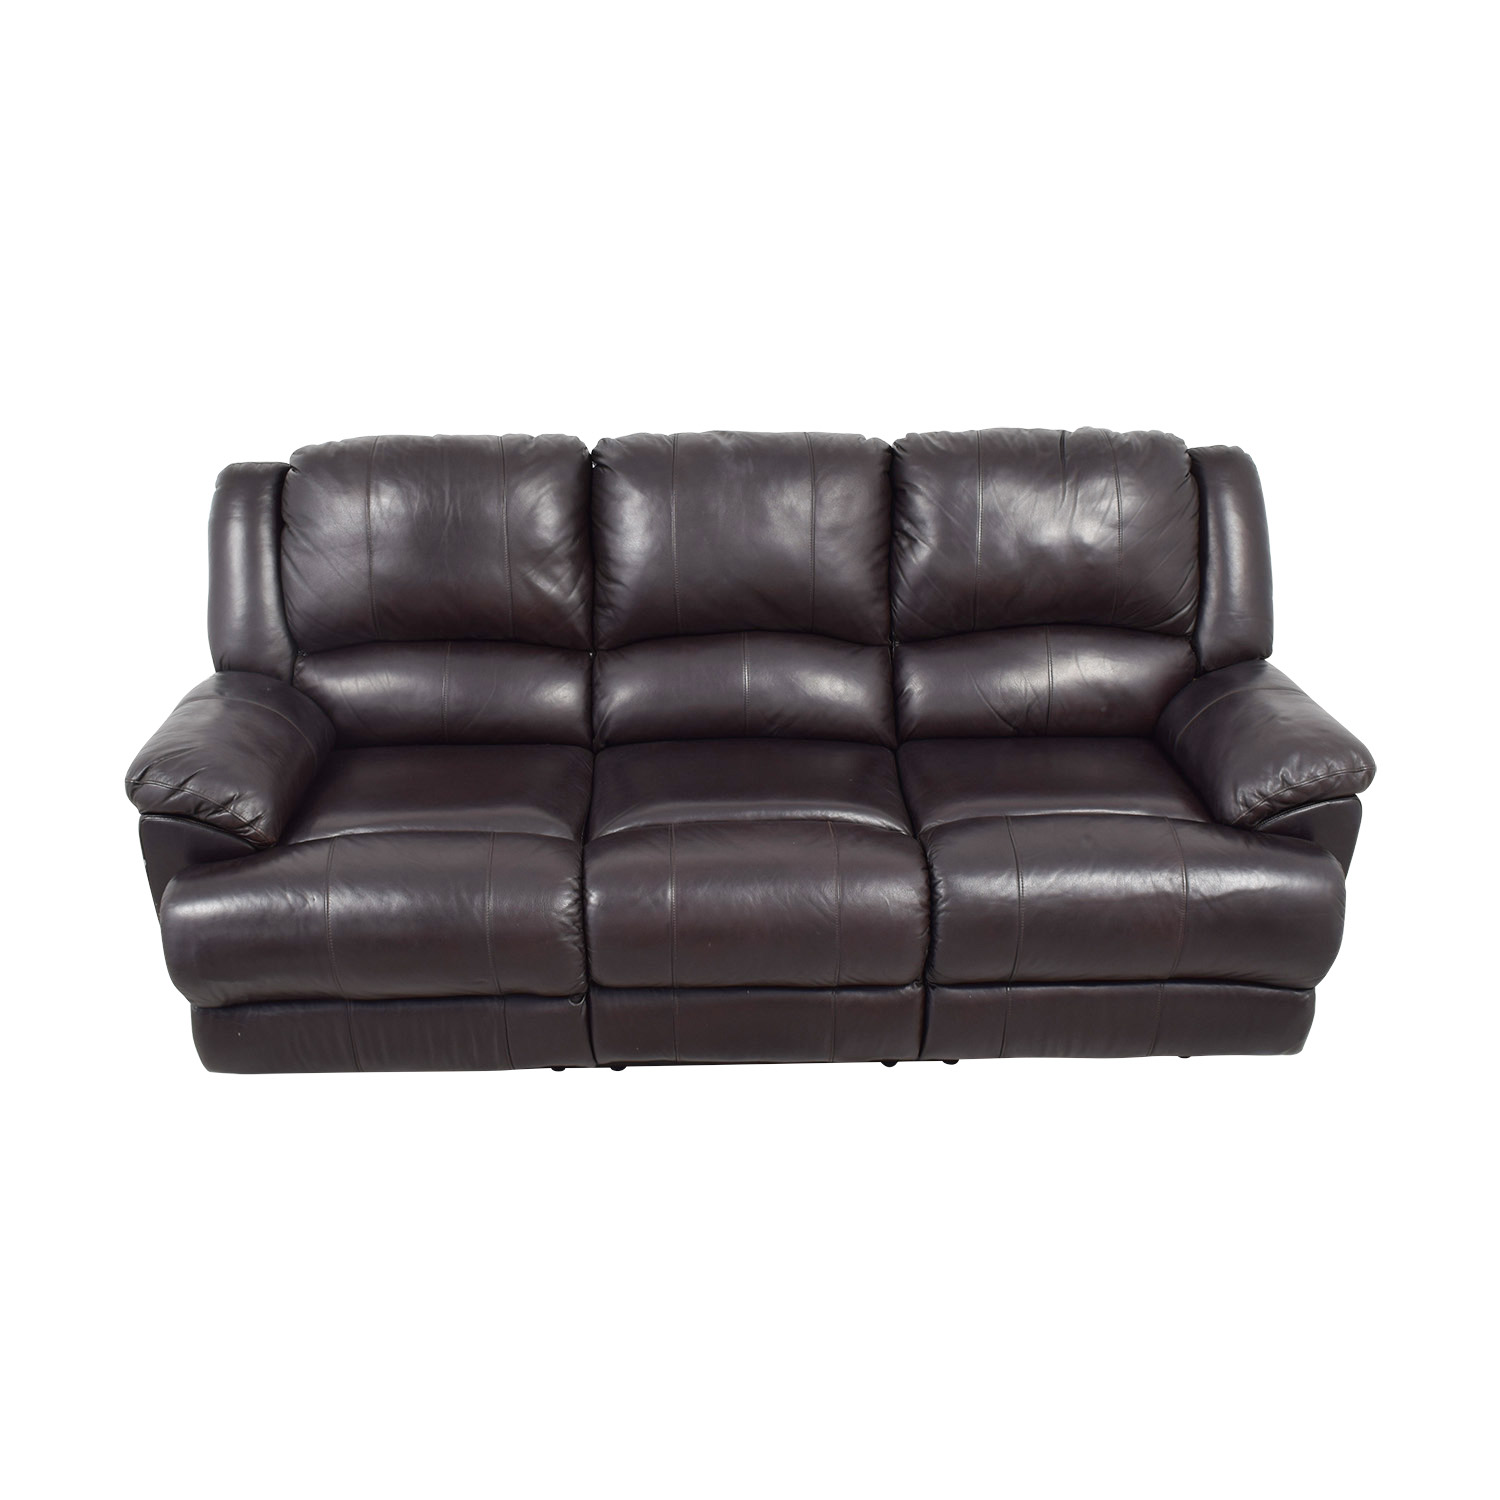 Ashley Furniture Black Leather Reclining Couch Nj